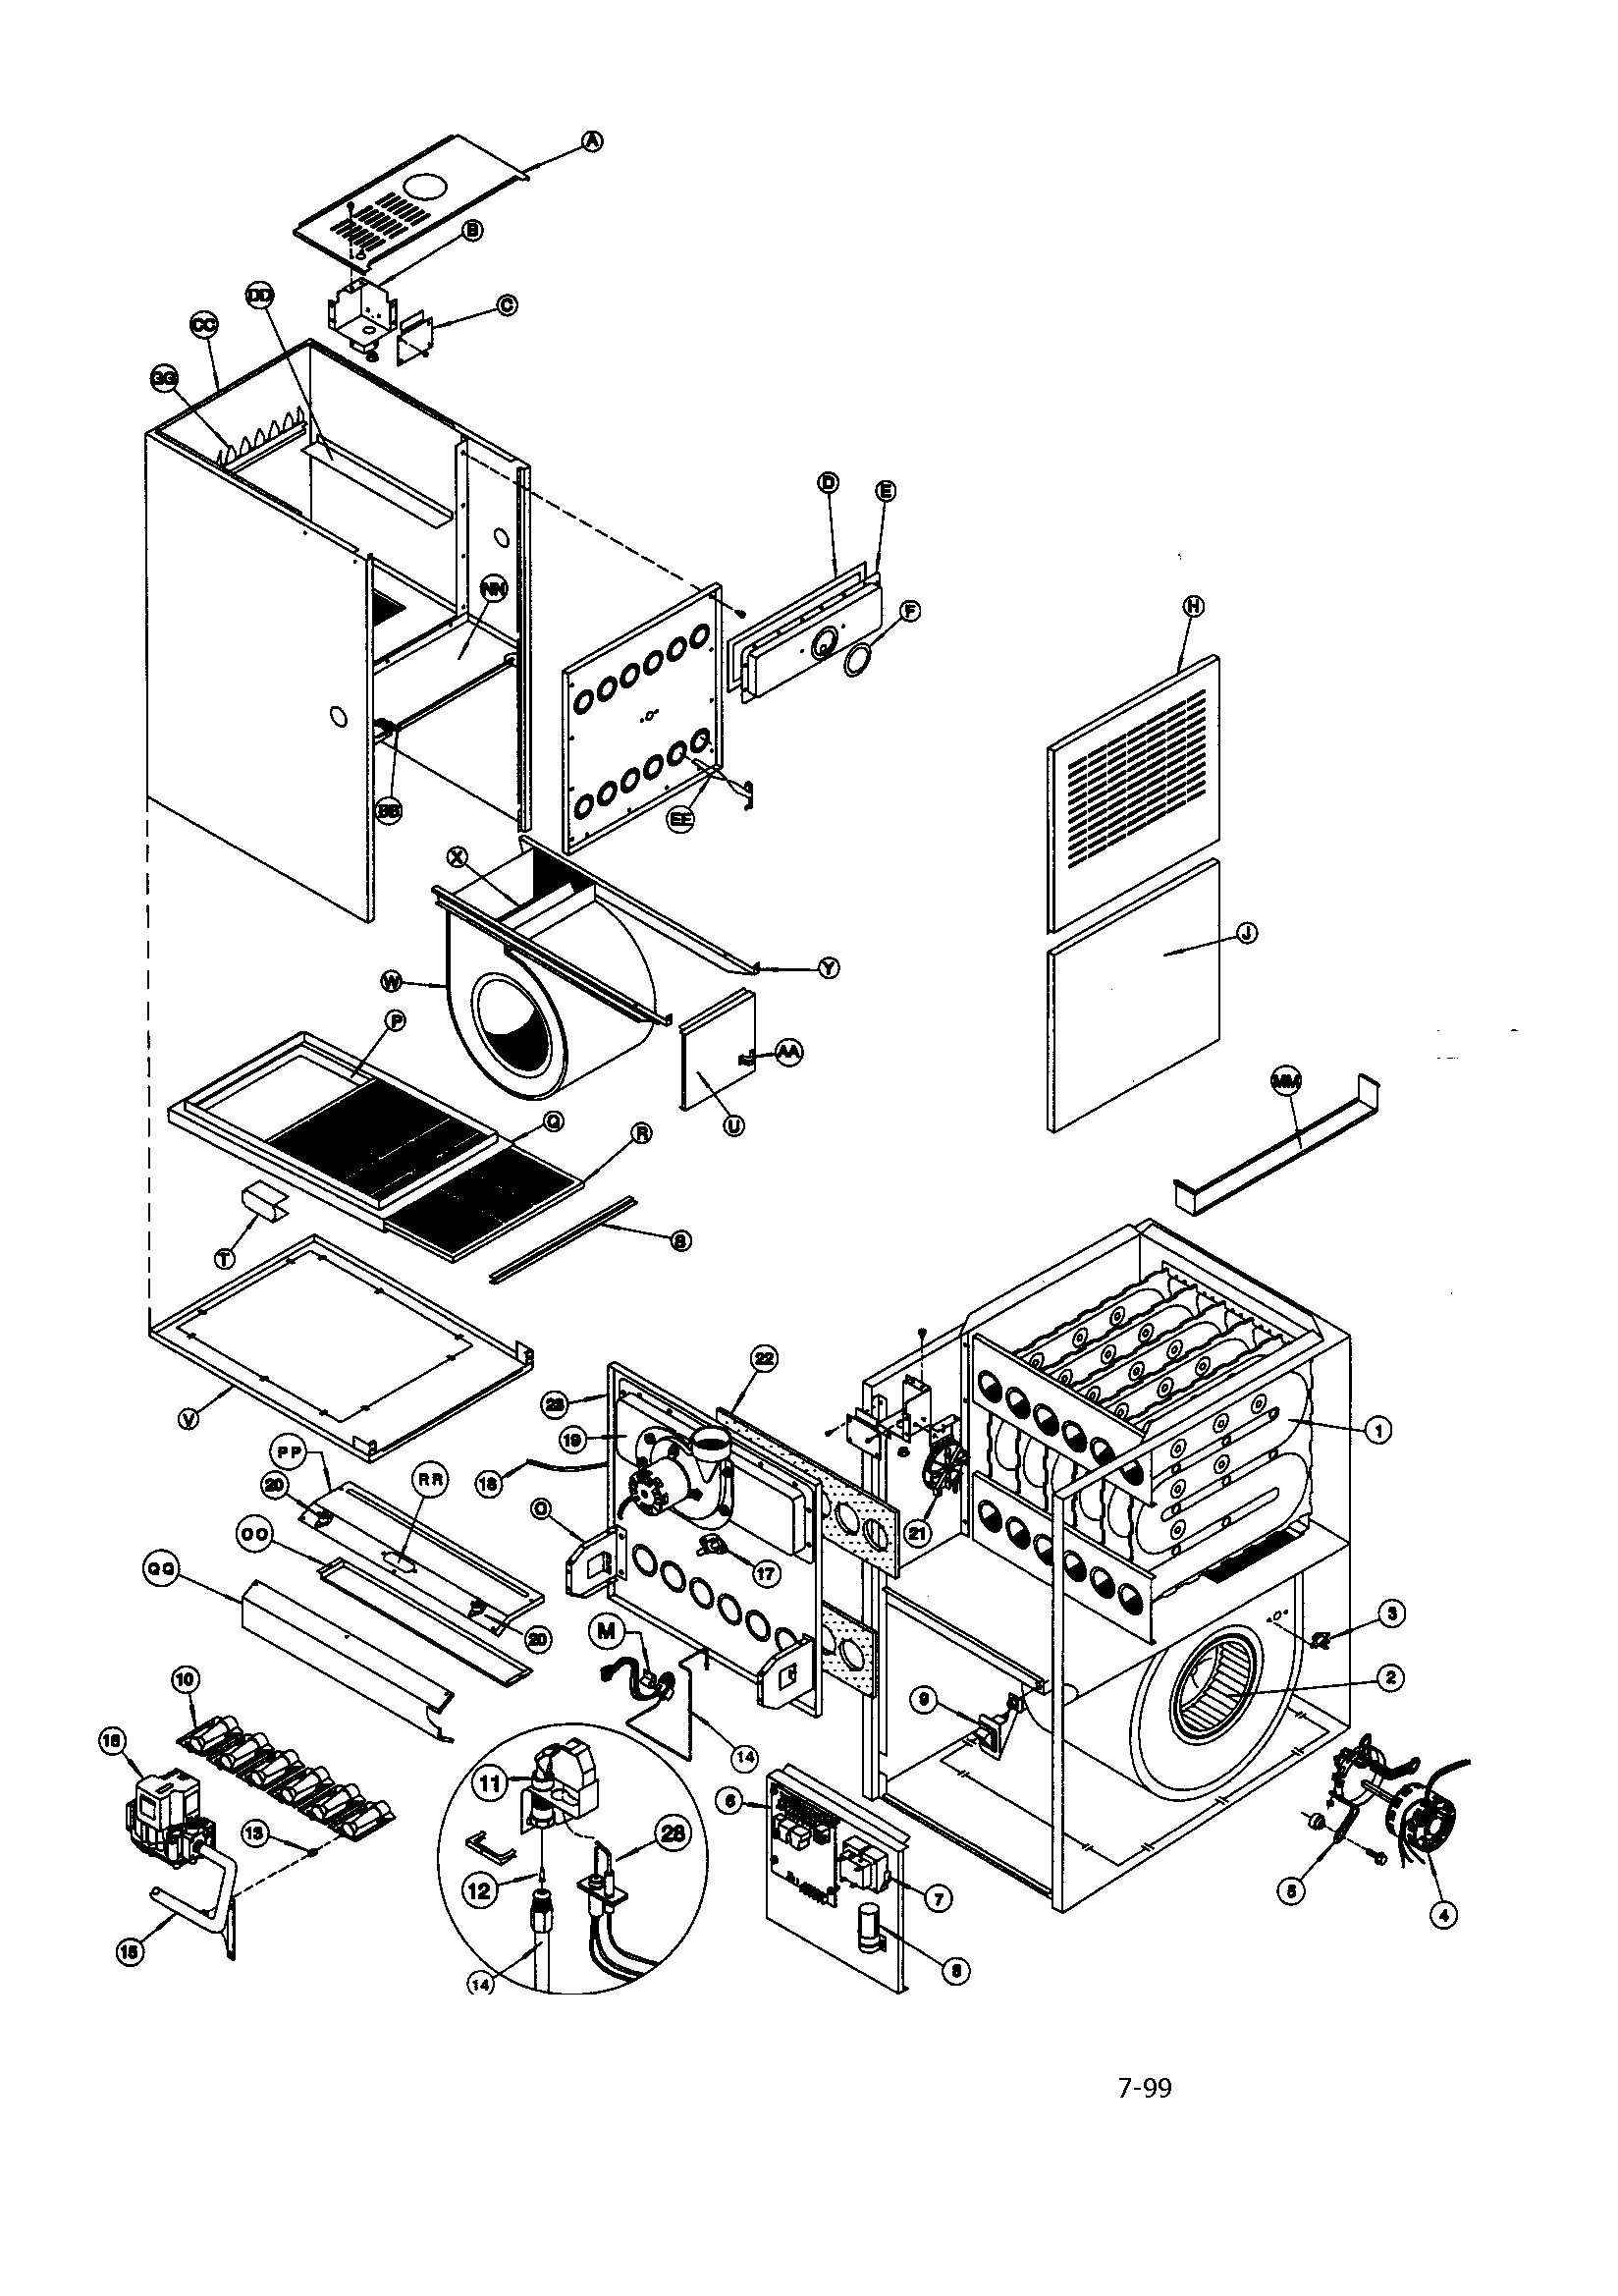 Intercity Products Furnace Wiring Diagram Ruud Furnaces